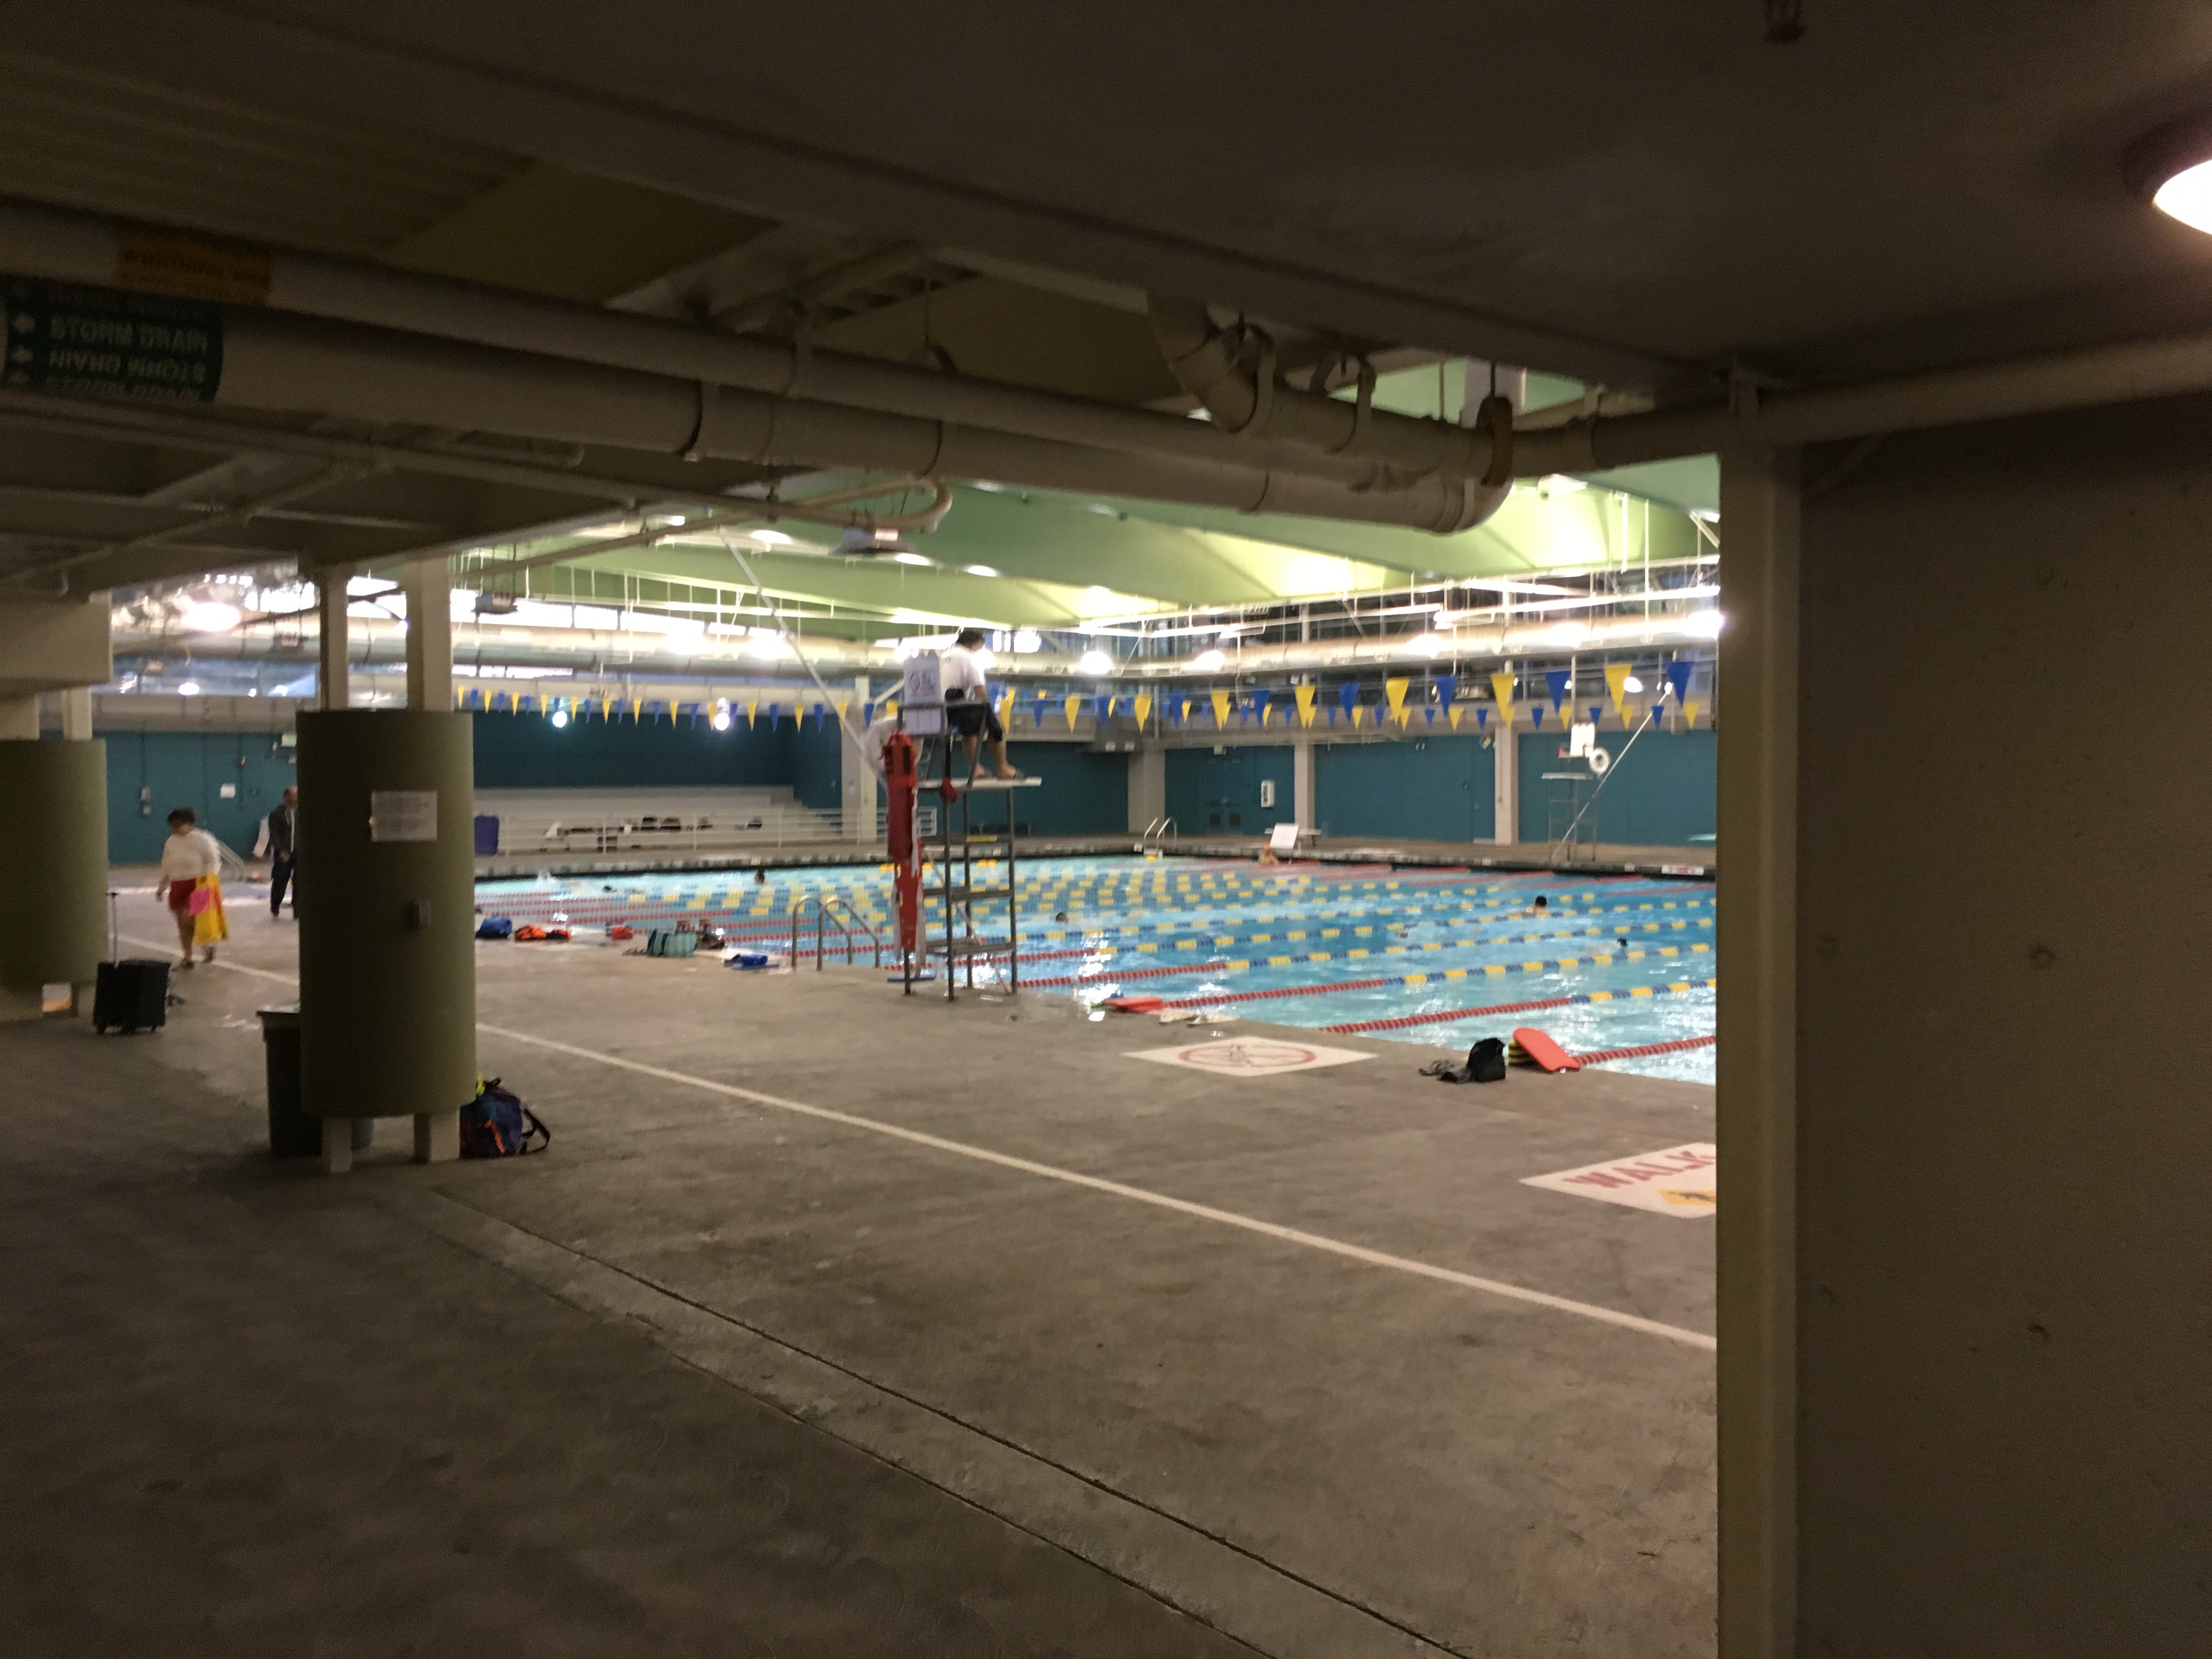 0266 - Echo Park Deep Pool (Los Angeles)